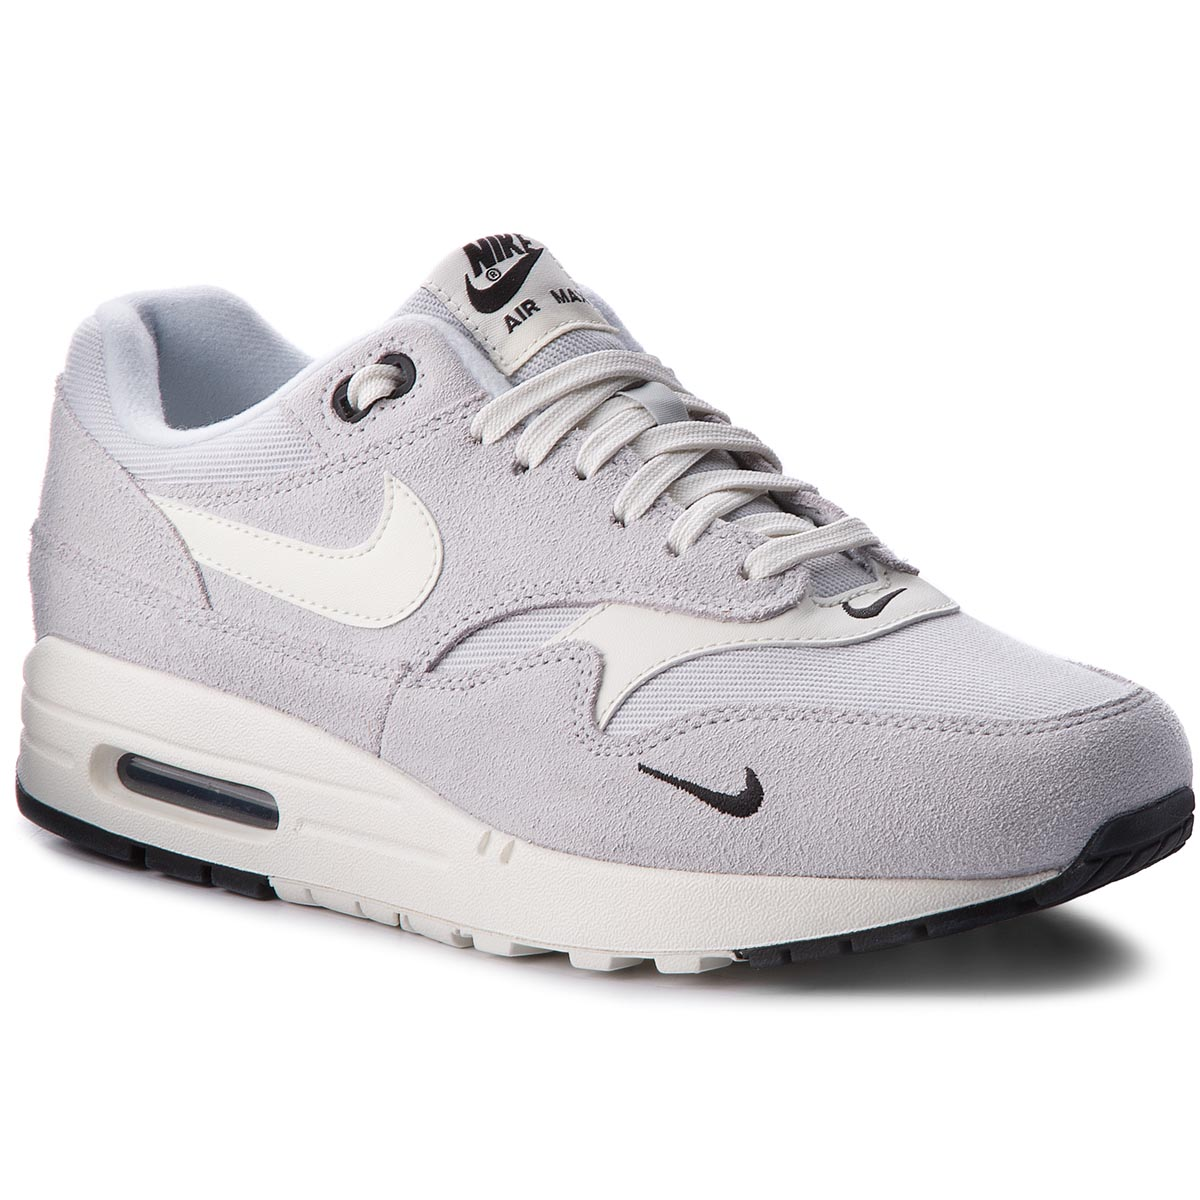 huge selection of 9cc9c 57e69 Shoes NIKE Air Max 1 Premium 875844 006 Pure Platinum Sail Black White